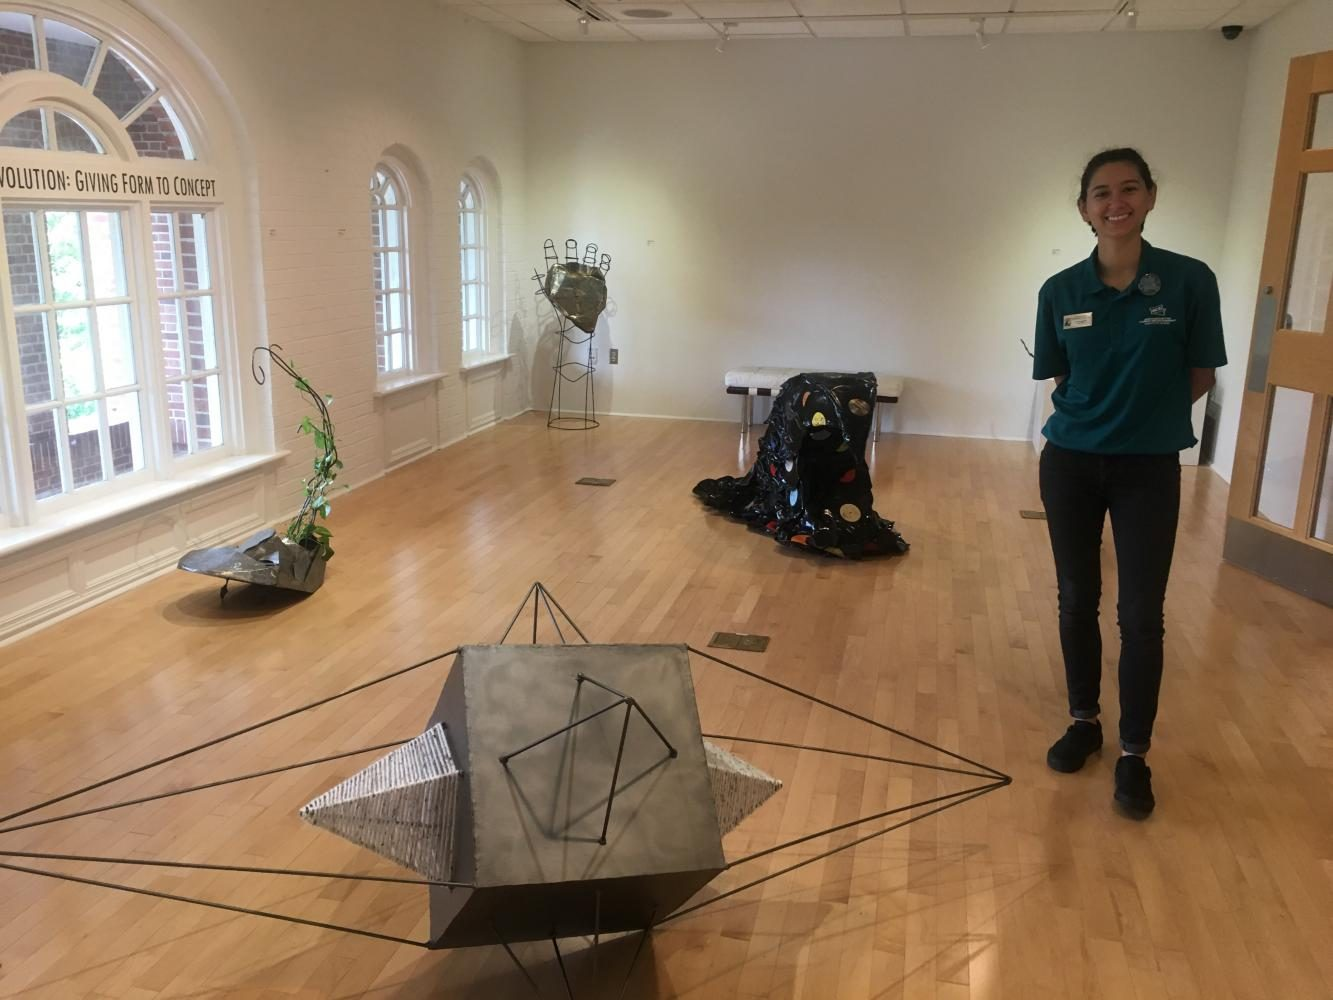 Catarina Mendez, Arts Chair for the Association for Campus Entertainment, in UNCW's Boseman Art Gallery.